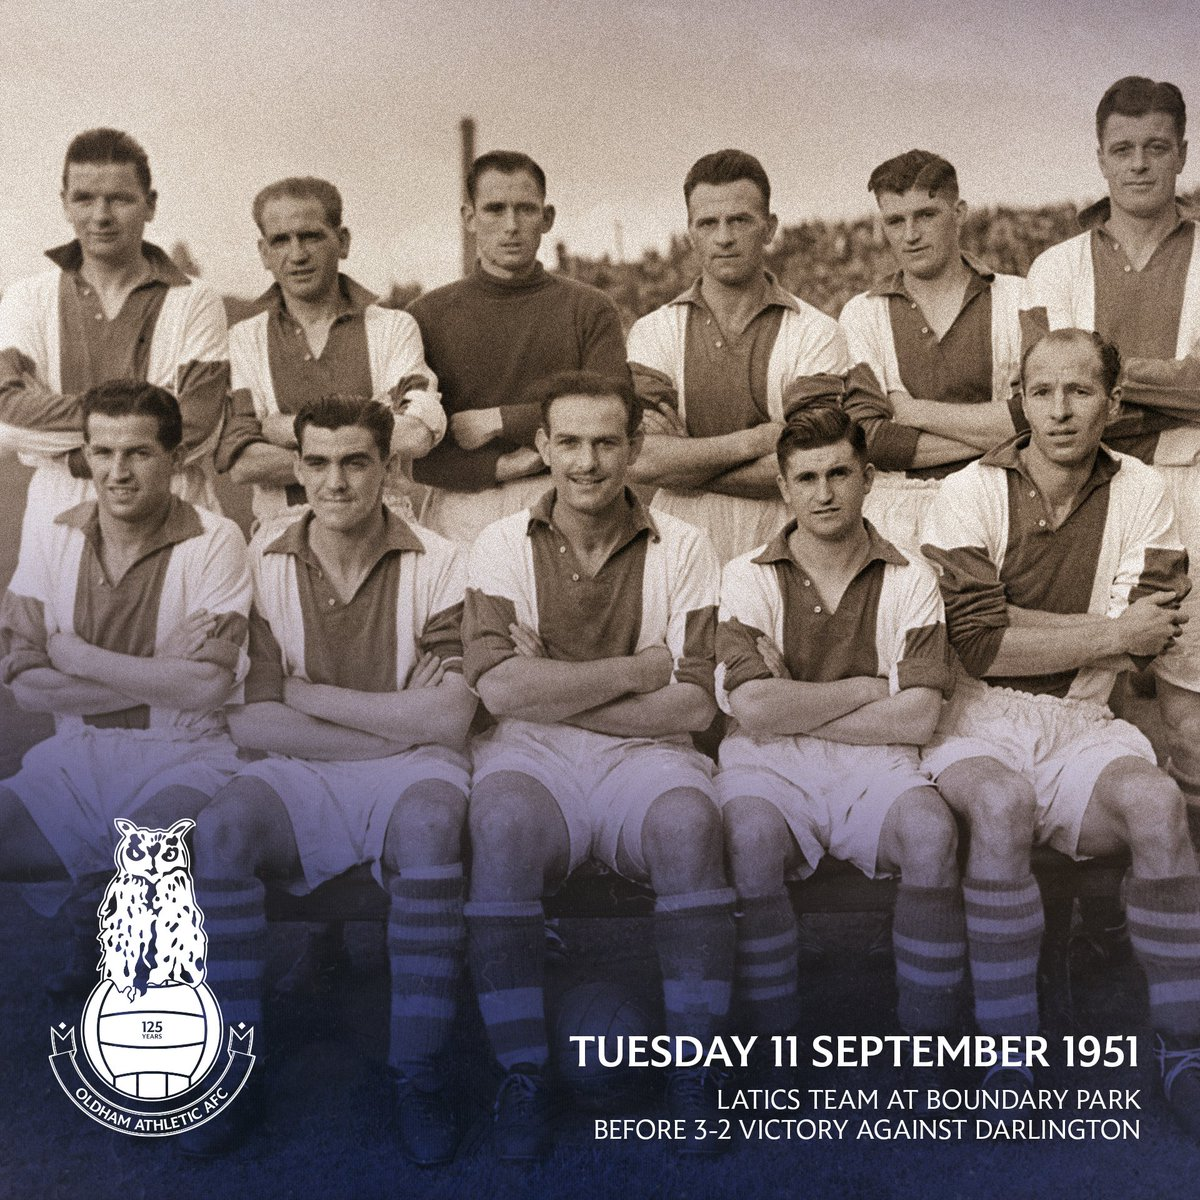 A #ThrowbackThursday for the 1951/52 Third Division North team, the season before winning the title.  Peter McKennan, John Warner, Fred Ogden, Sydney Goodfellow, Tommy Bell, Archibald Whyte.  James Munro, Willie Ormond, George Hardwick, Bobby McIlvenny, Eric Gemmell.  #oafc125<br>http://pic.twitter.com/7Py8H1G2jr